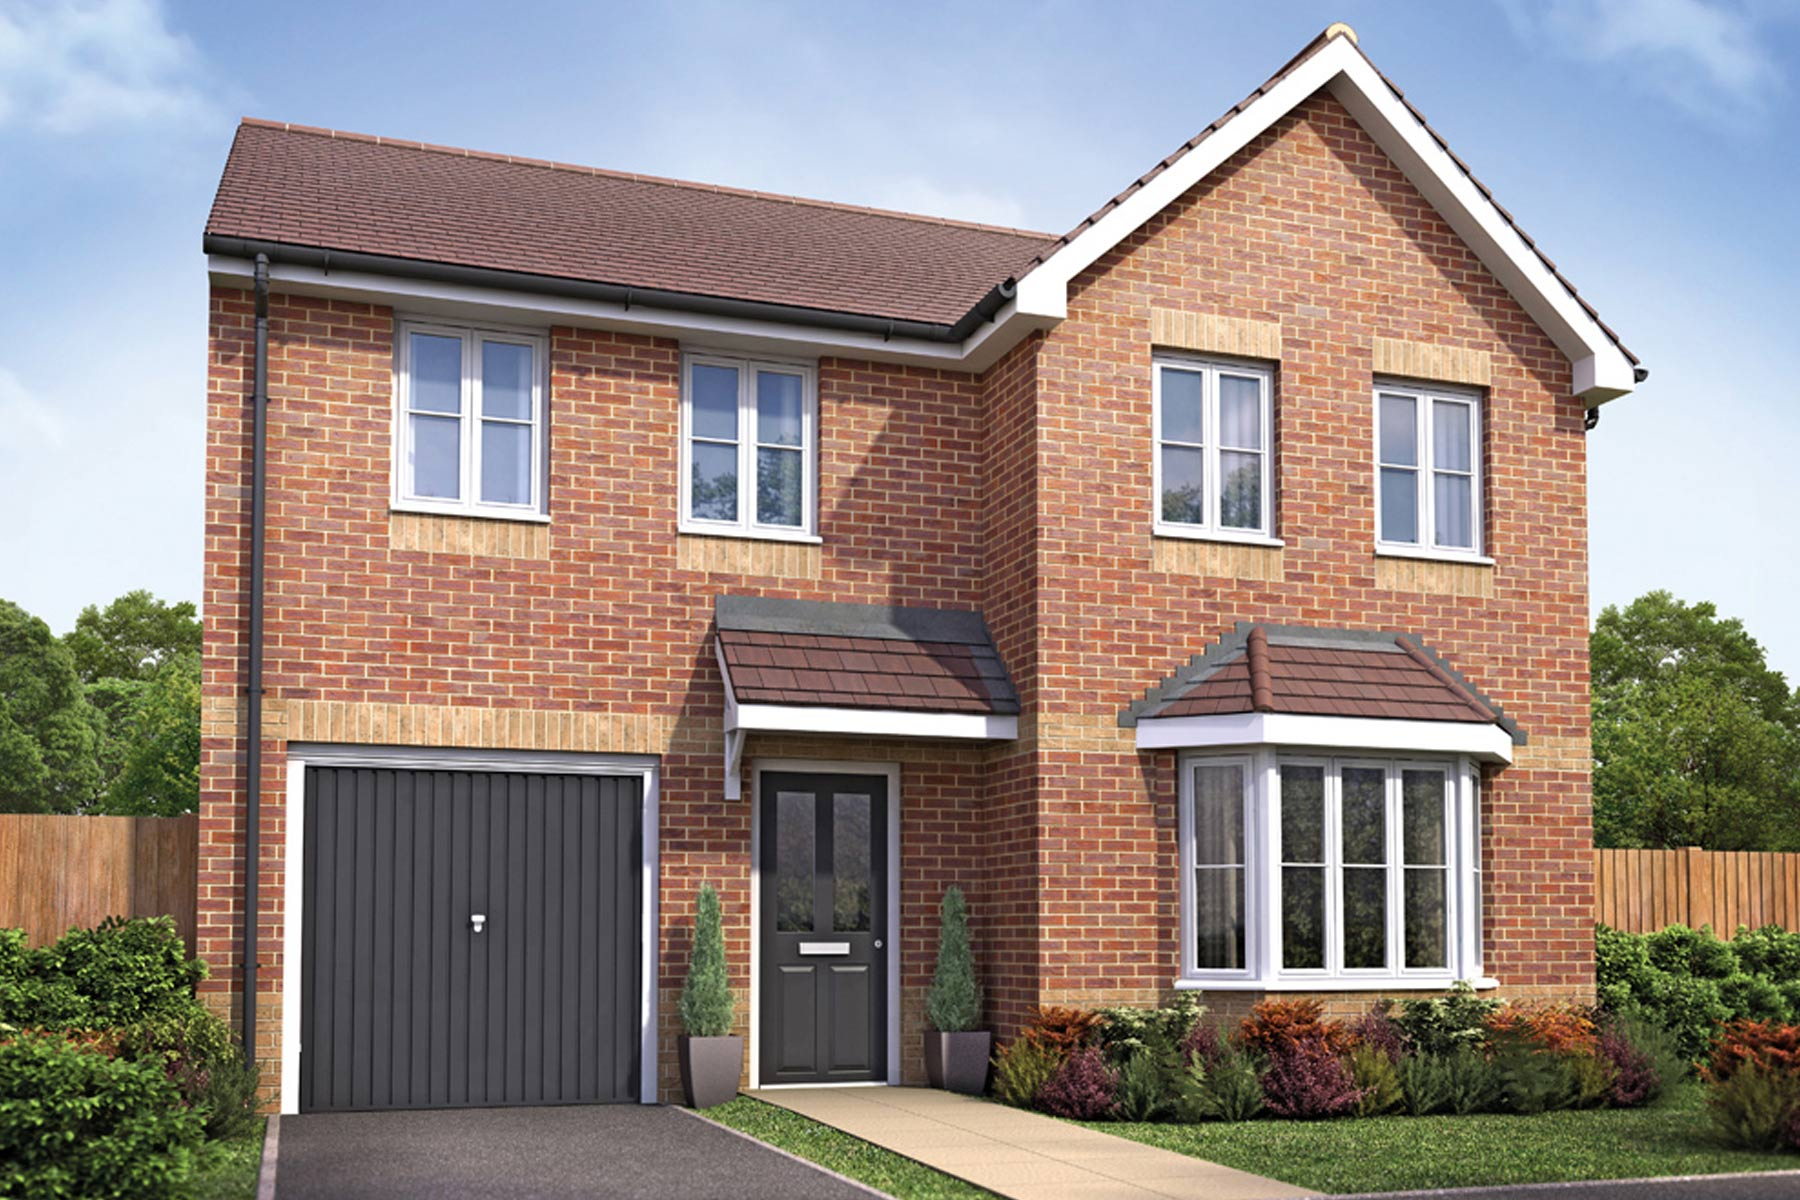 Taylor-WImpey-Exterior-Haddenham-PD411-4-bed